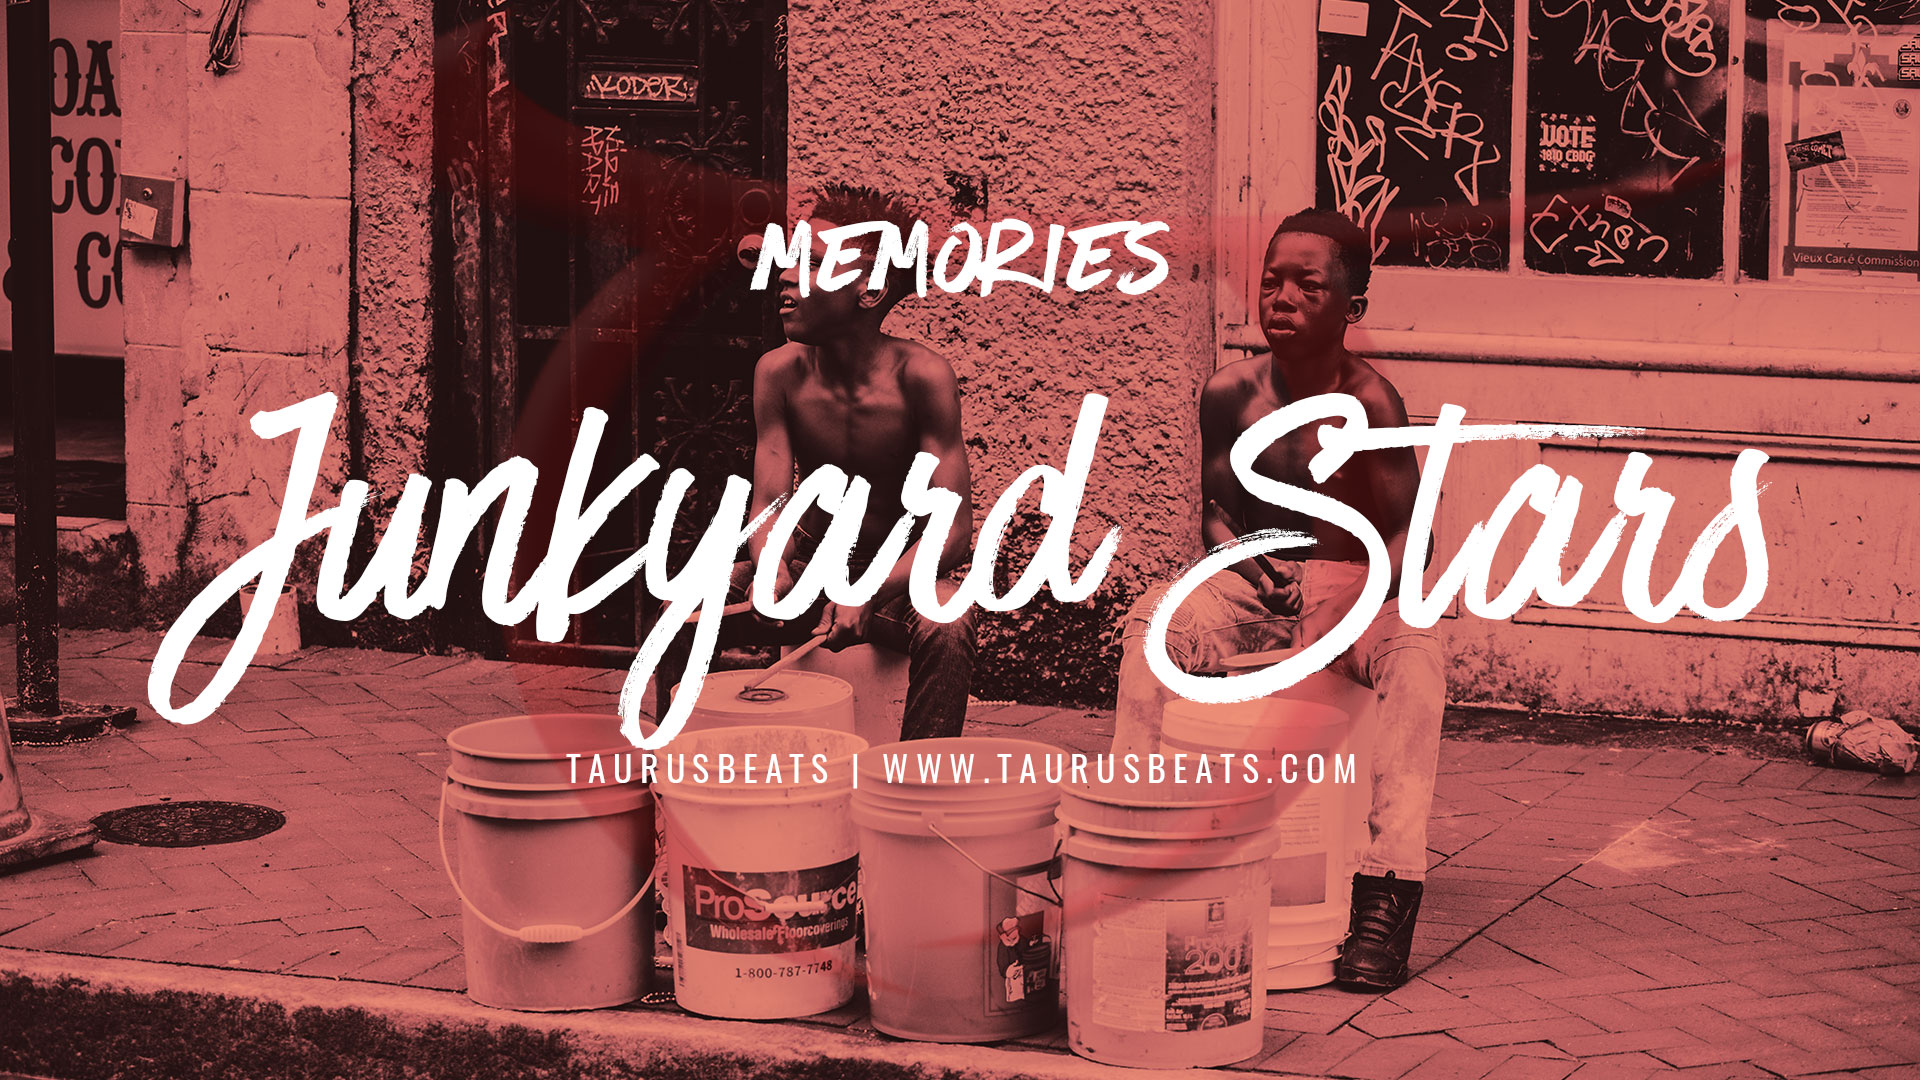 image for Junkyard Stars